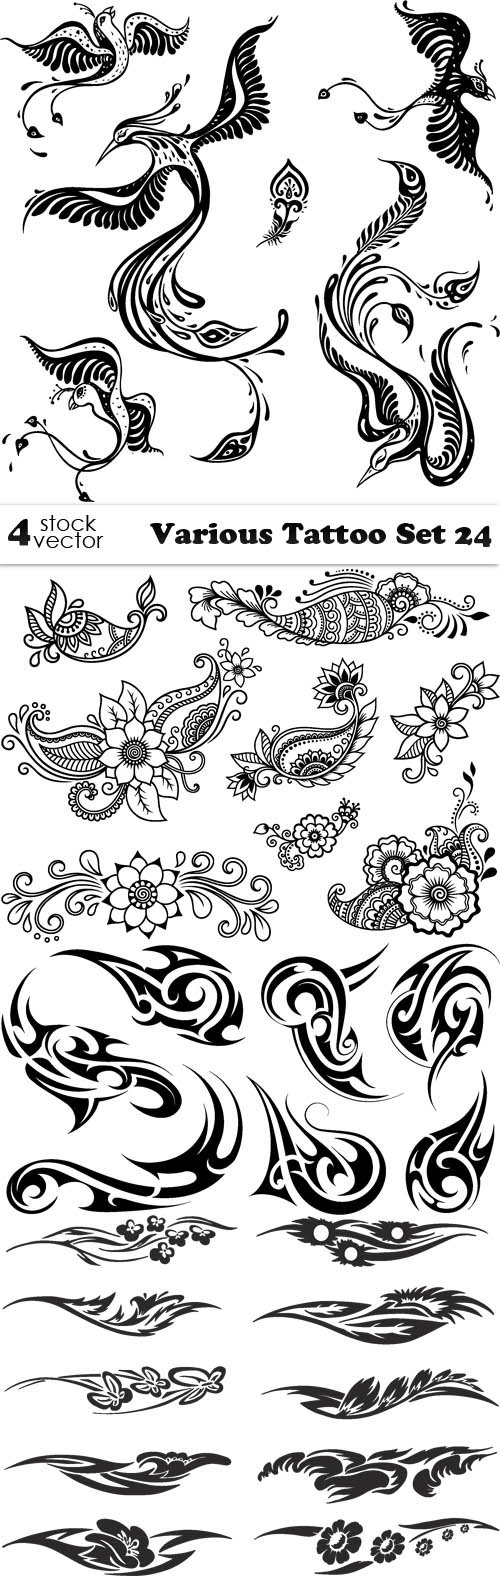 Vectors - Various Tattoo Set 24